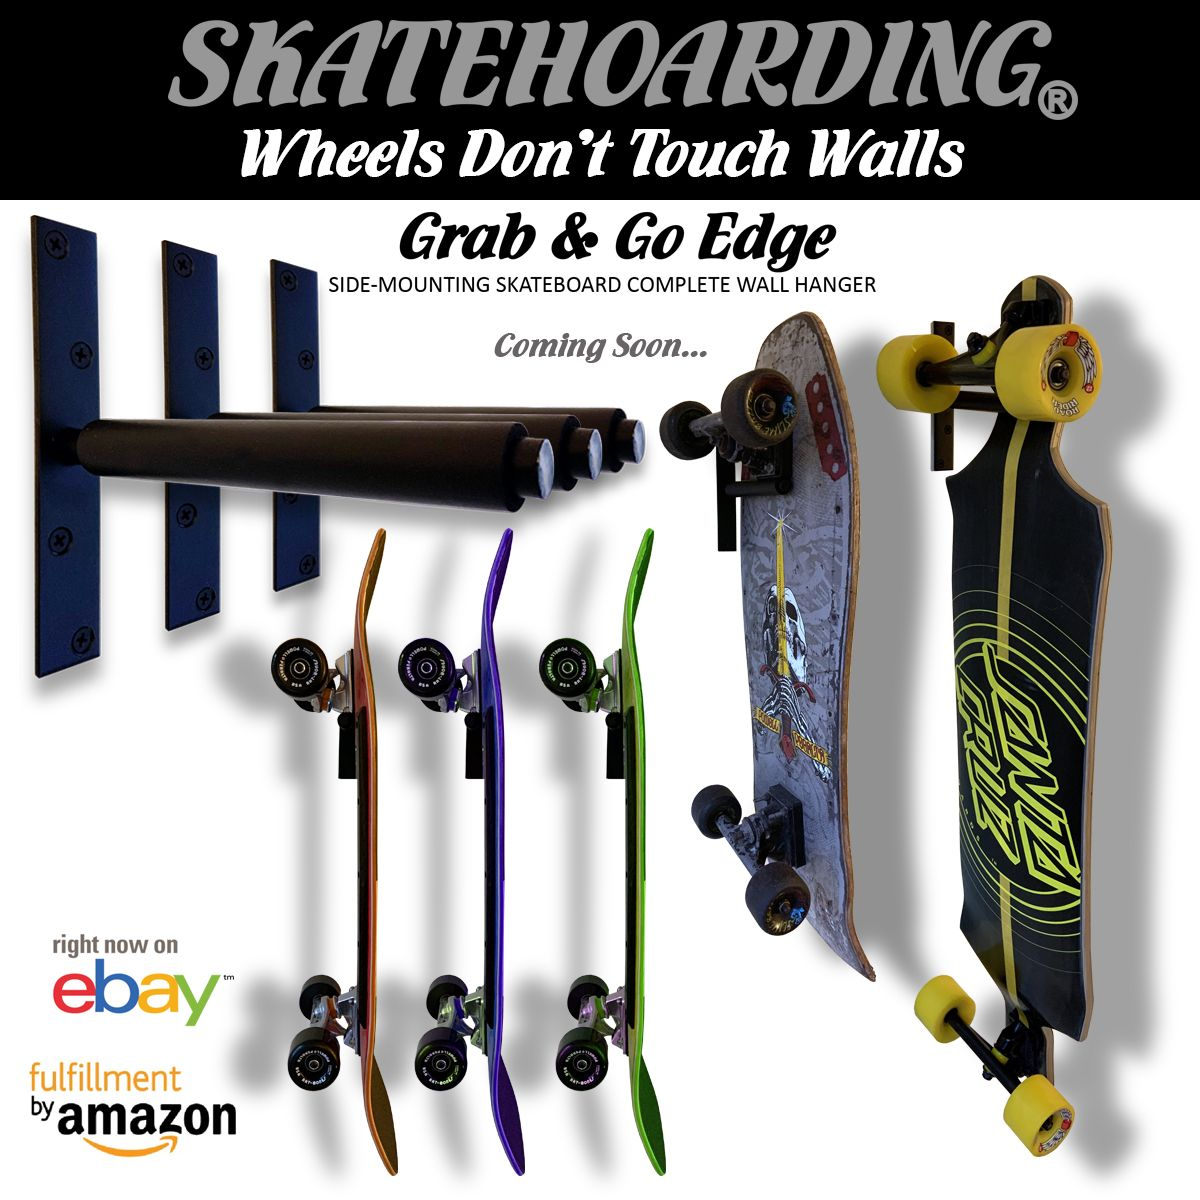 Details about grab go edge skateboard complete wall